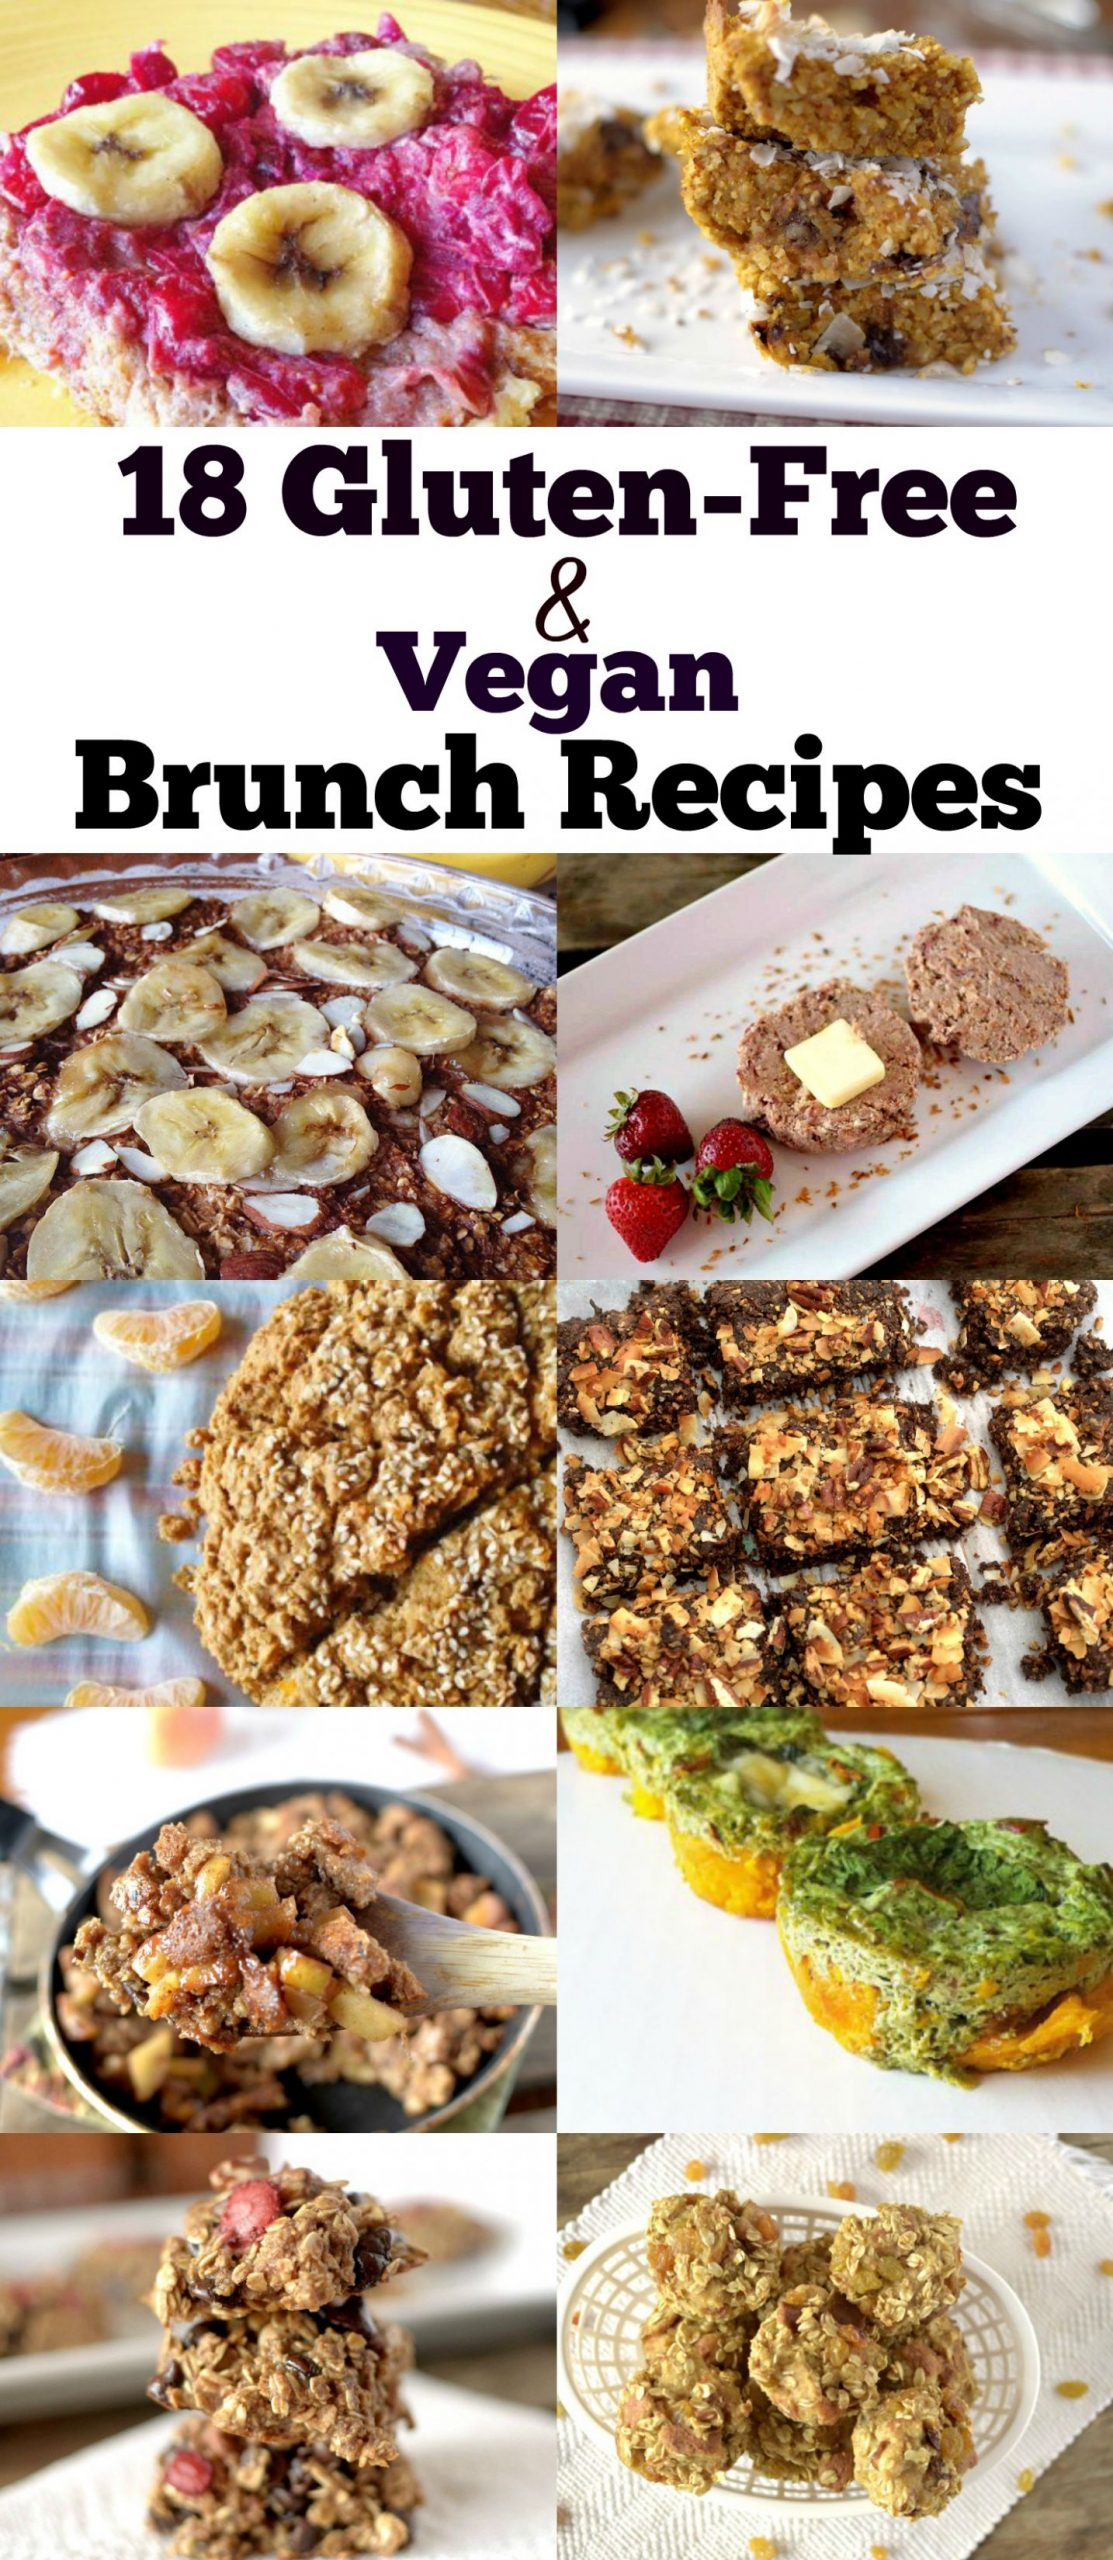 12 Gluten-Free and Vegan Brunch Recipes » Change your Food-it-tude ..